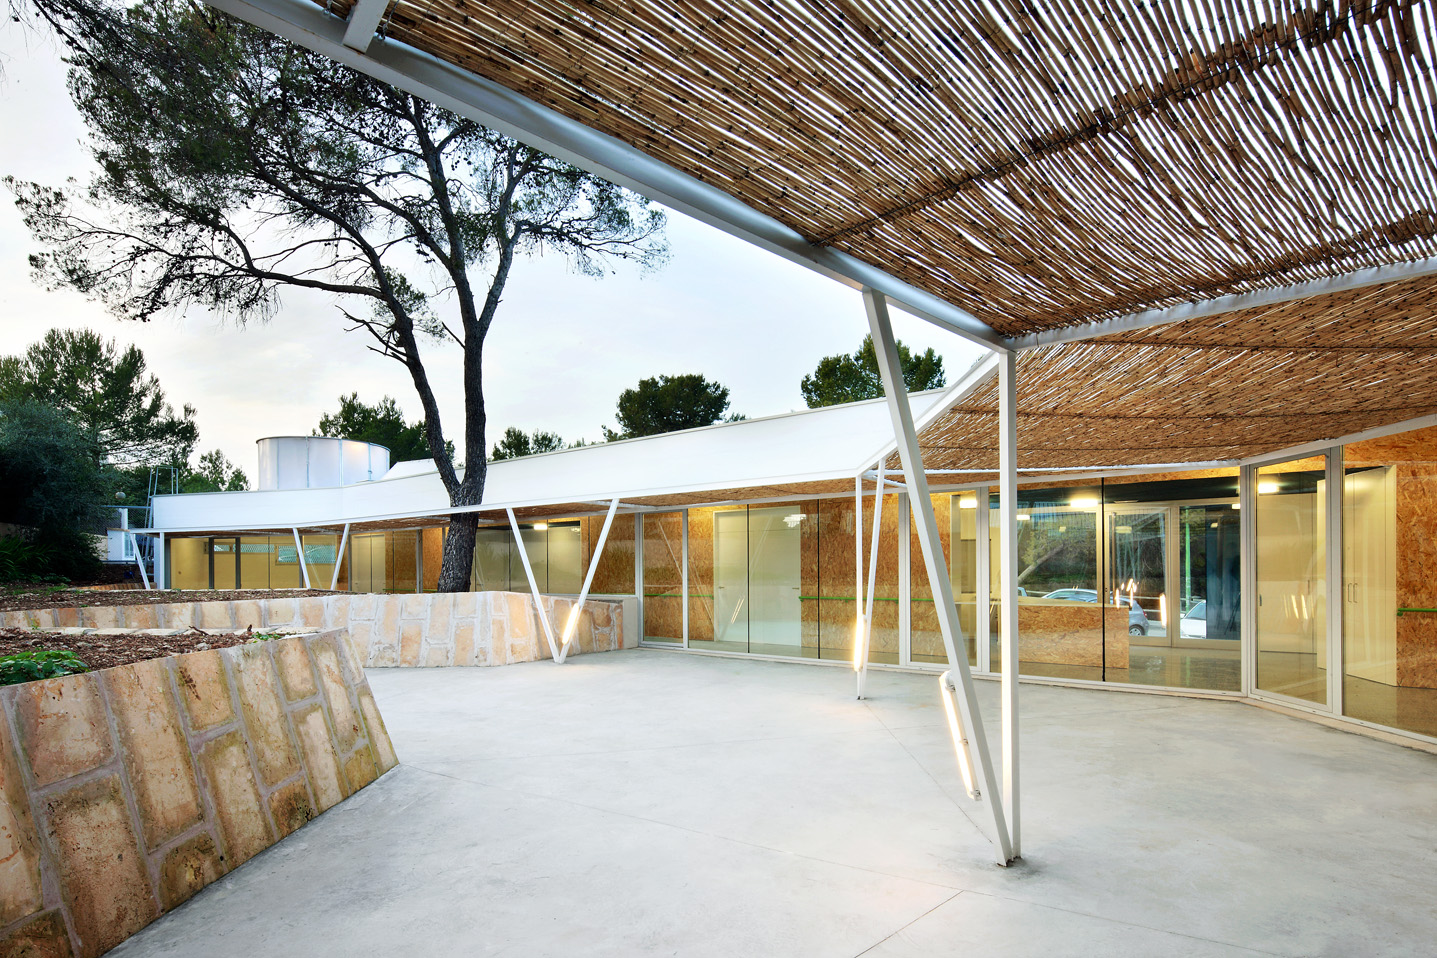 Flexo arquitectura day center and community activities for Arquitectura prehistorica